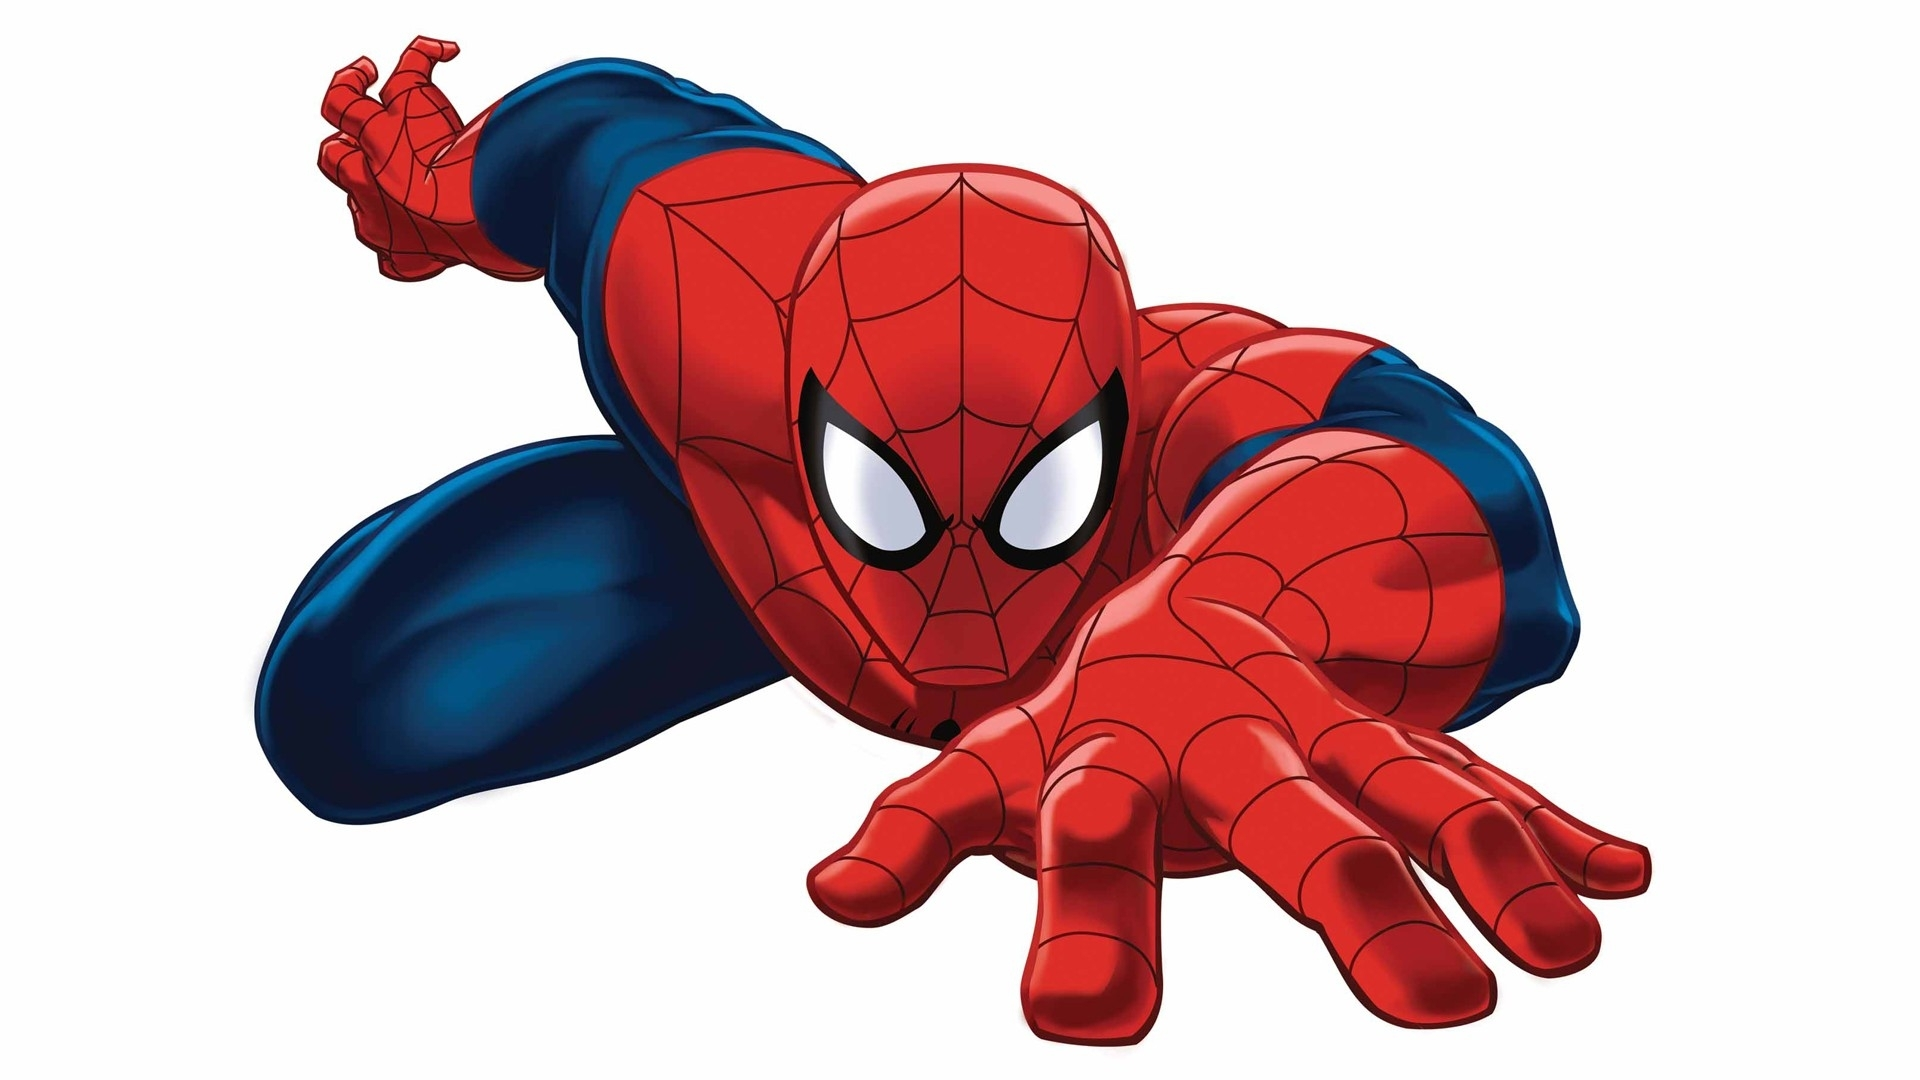 spider-man : le film d'animation encore repoussé par sony | brain